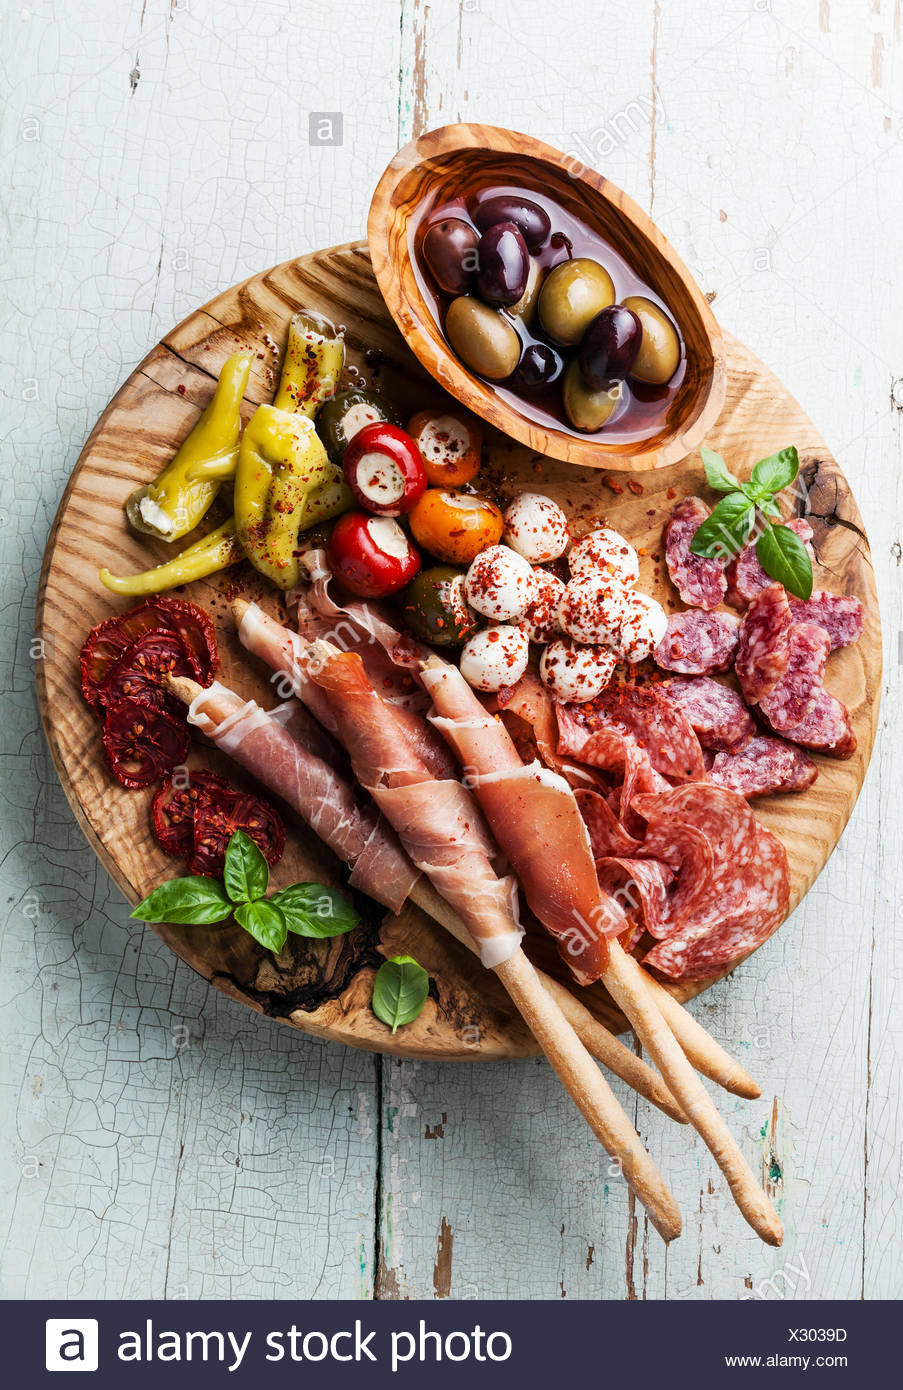 Antipasto Platter Cold meat plate with grissini bread sticks on blue wooden background - Stock Image